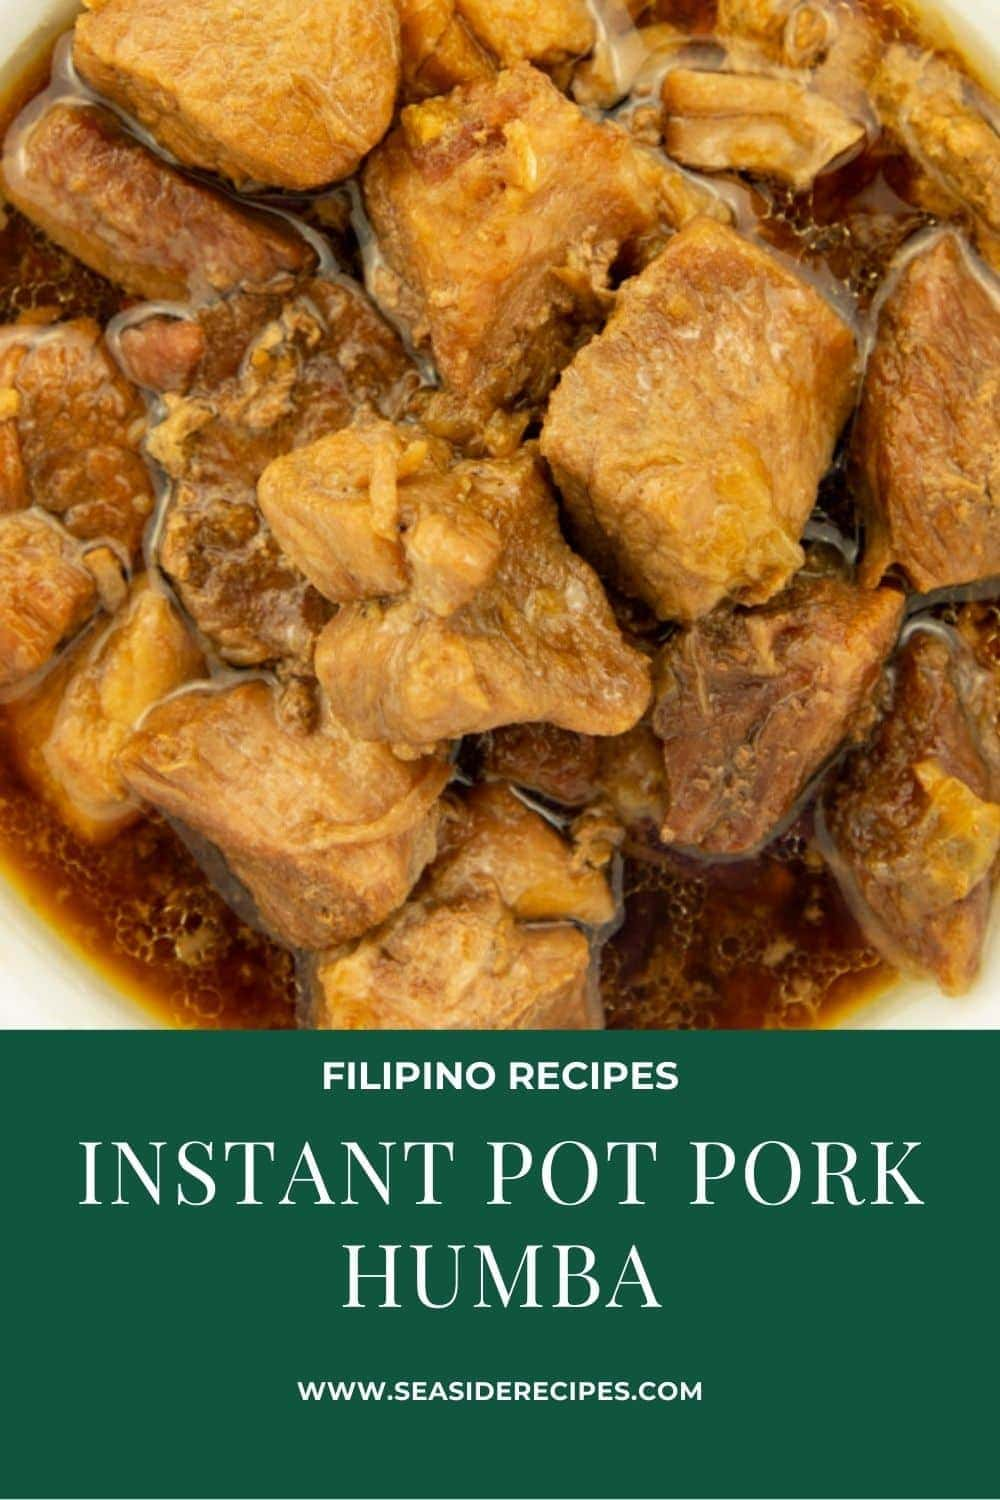 Instant Pot Filipino Pork Humba is very tender and tastes delicious. Quick and easy way to make a very tender pork humba. The sweet and slightly sour taste of the pork humba is perfect eaten with rice. #instantpotrecipes #filipinoporkhumba #filipinoporkrecipes #porkhumbabisaya #instantpotporkhumba via @seasiderecipes